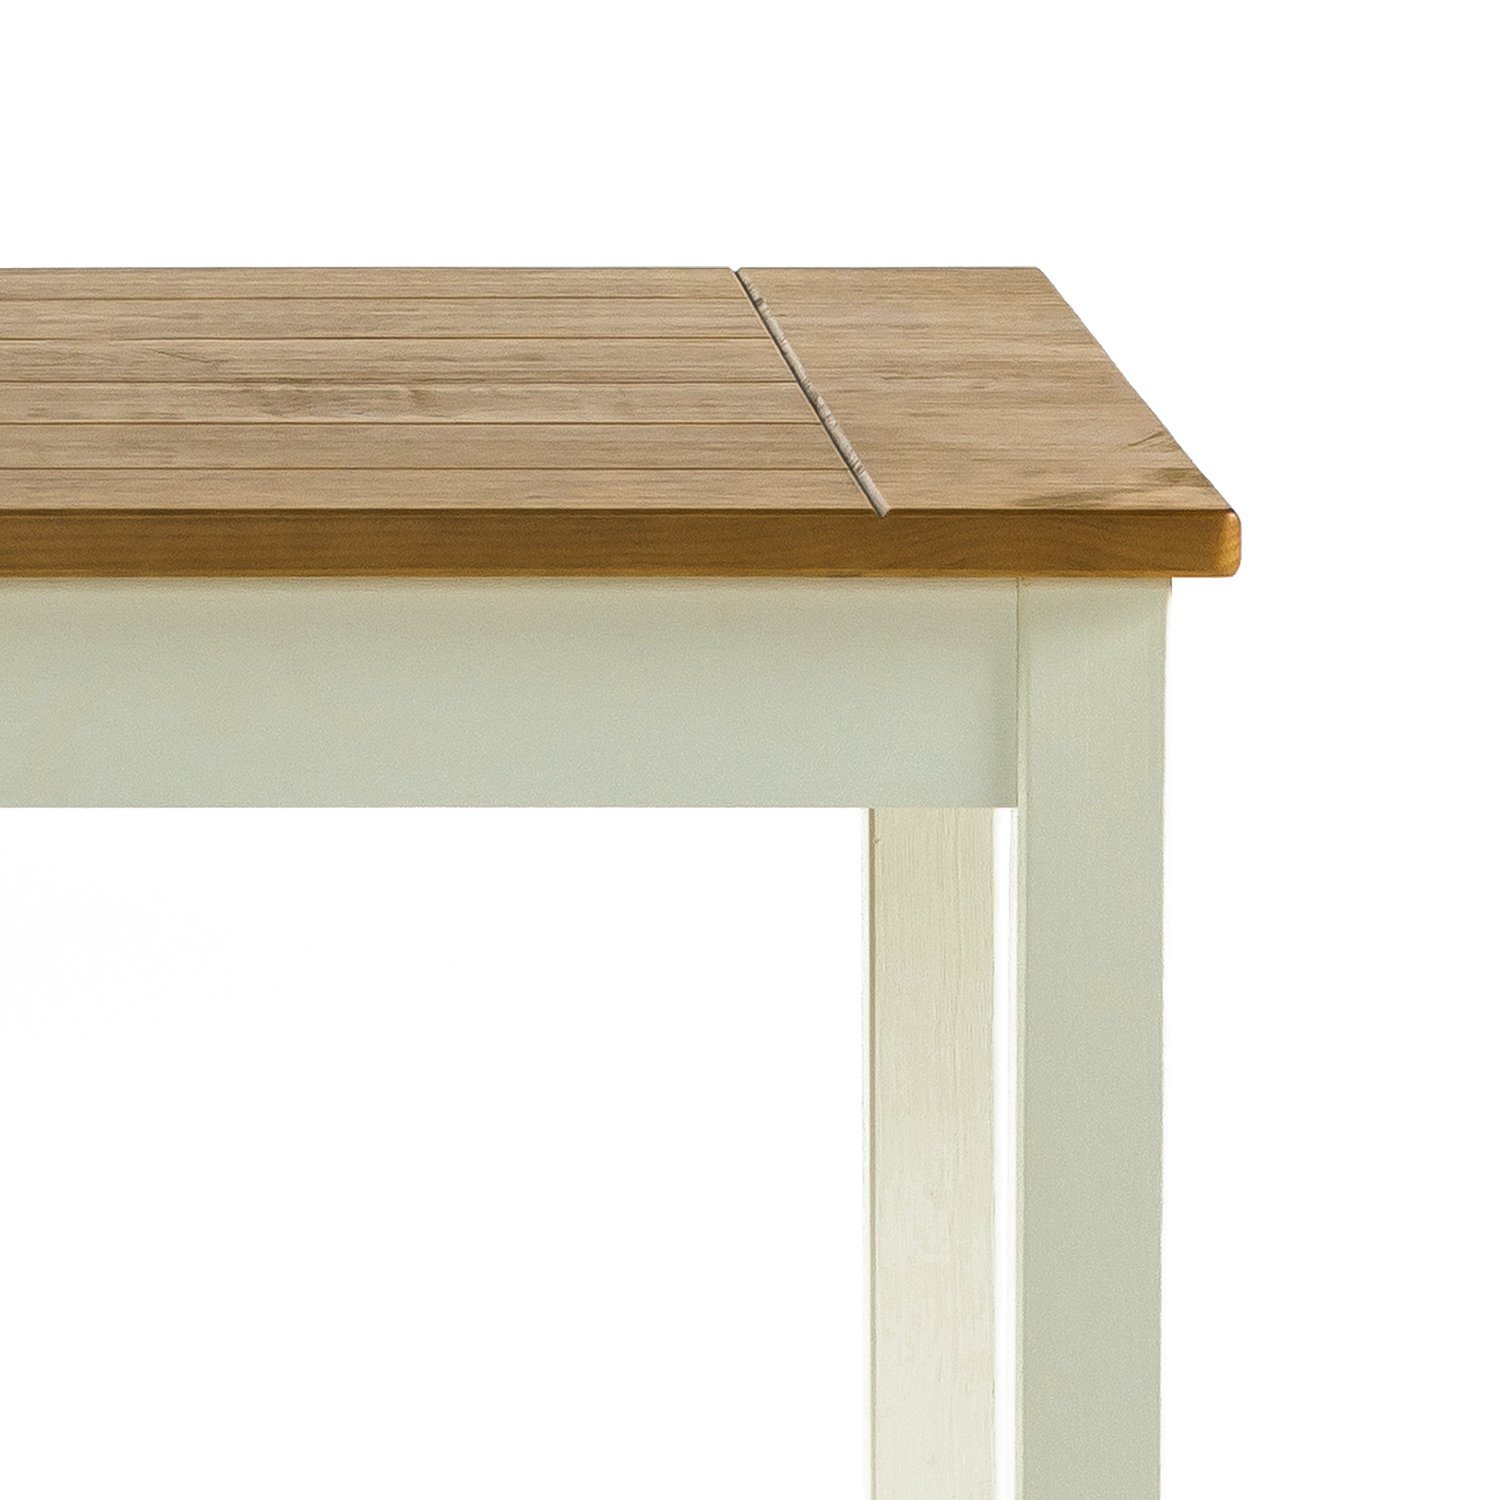 Zinus Farmhouse Square Wood Dining Table by Zinus (Image #5)